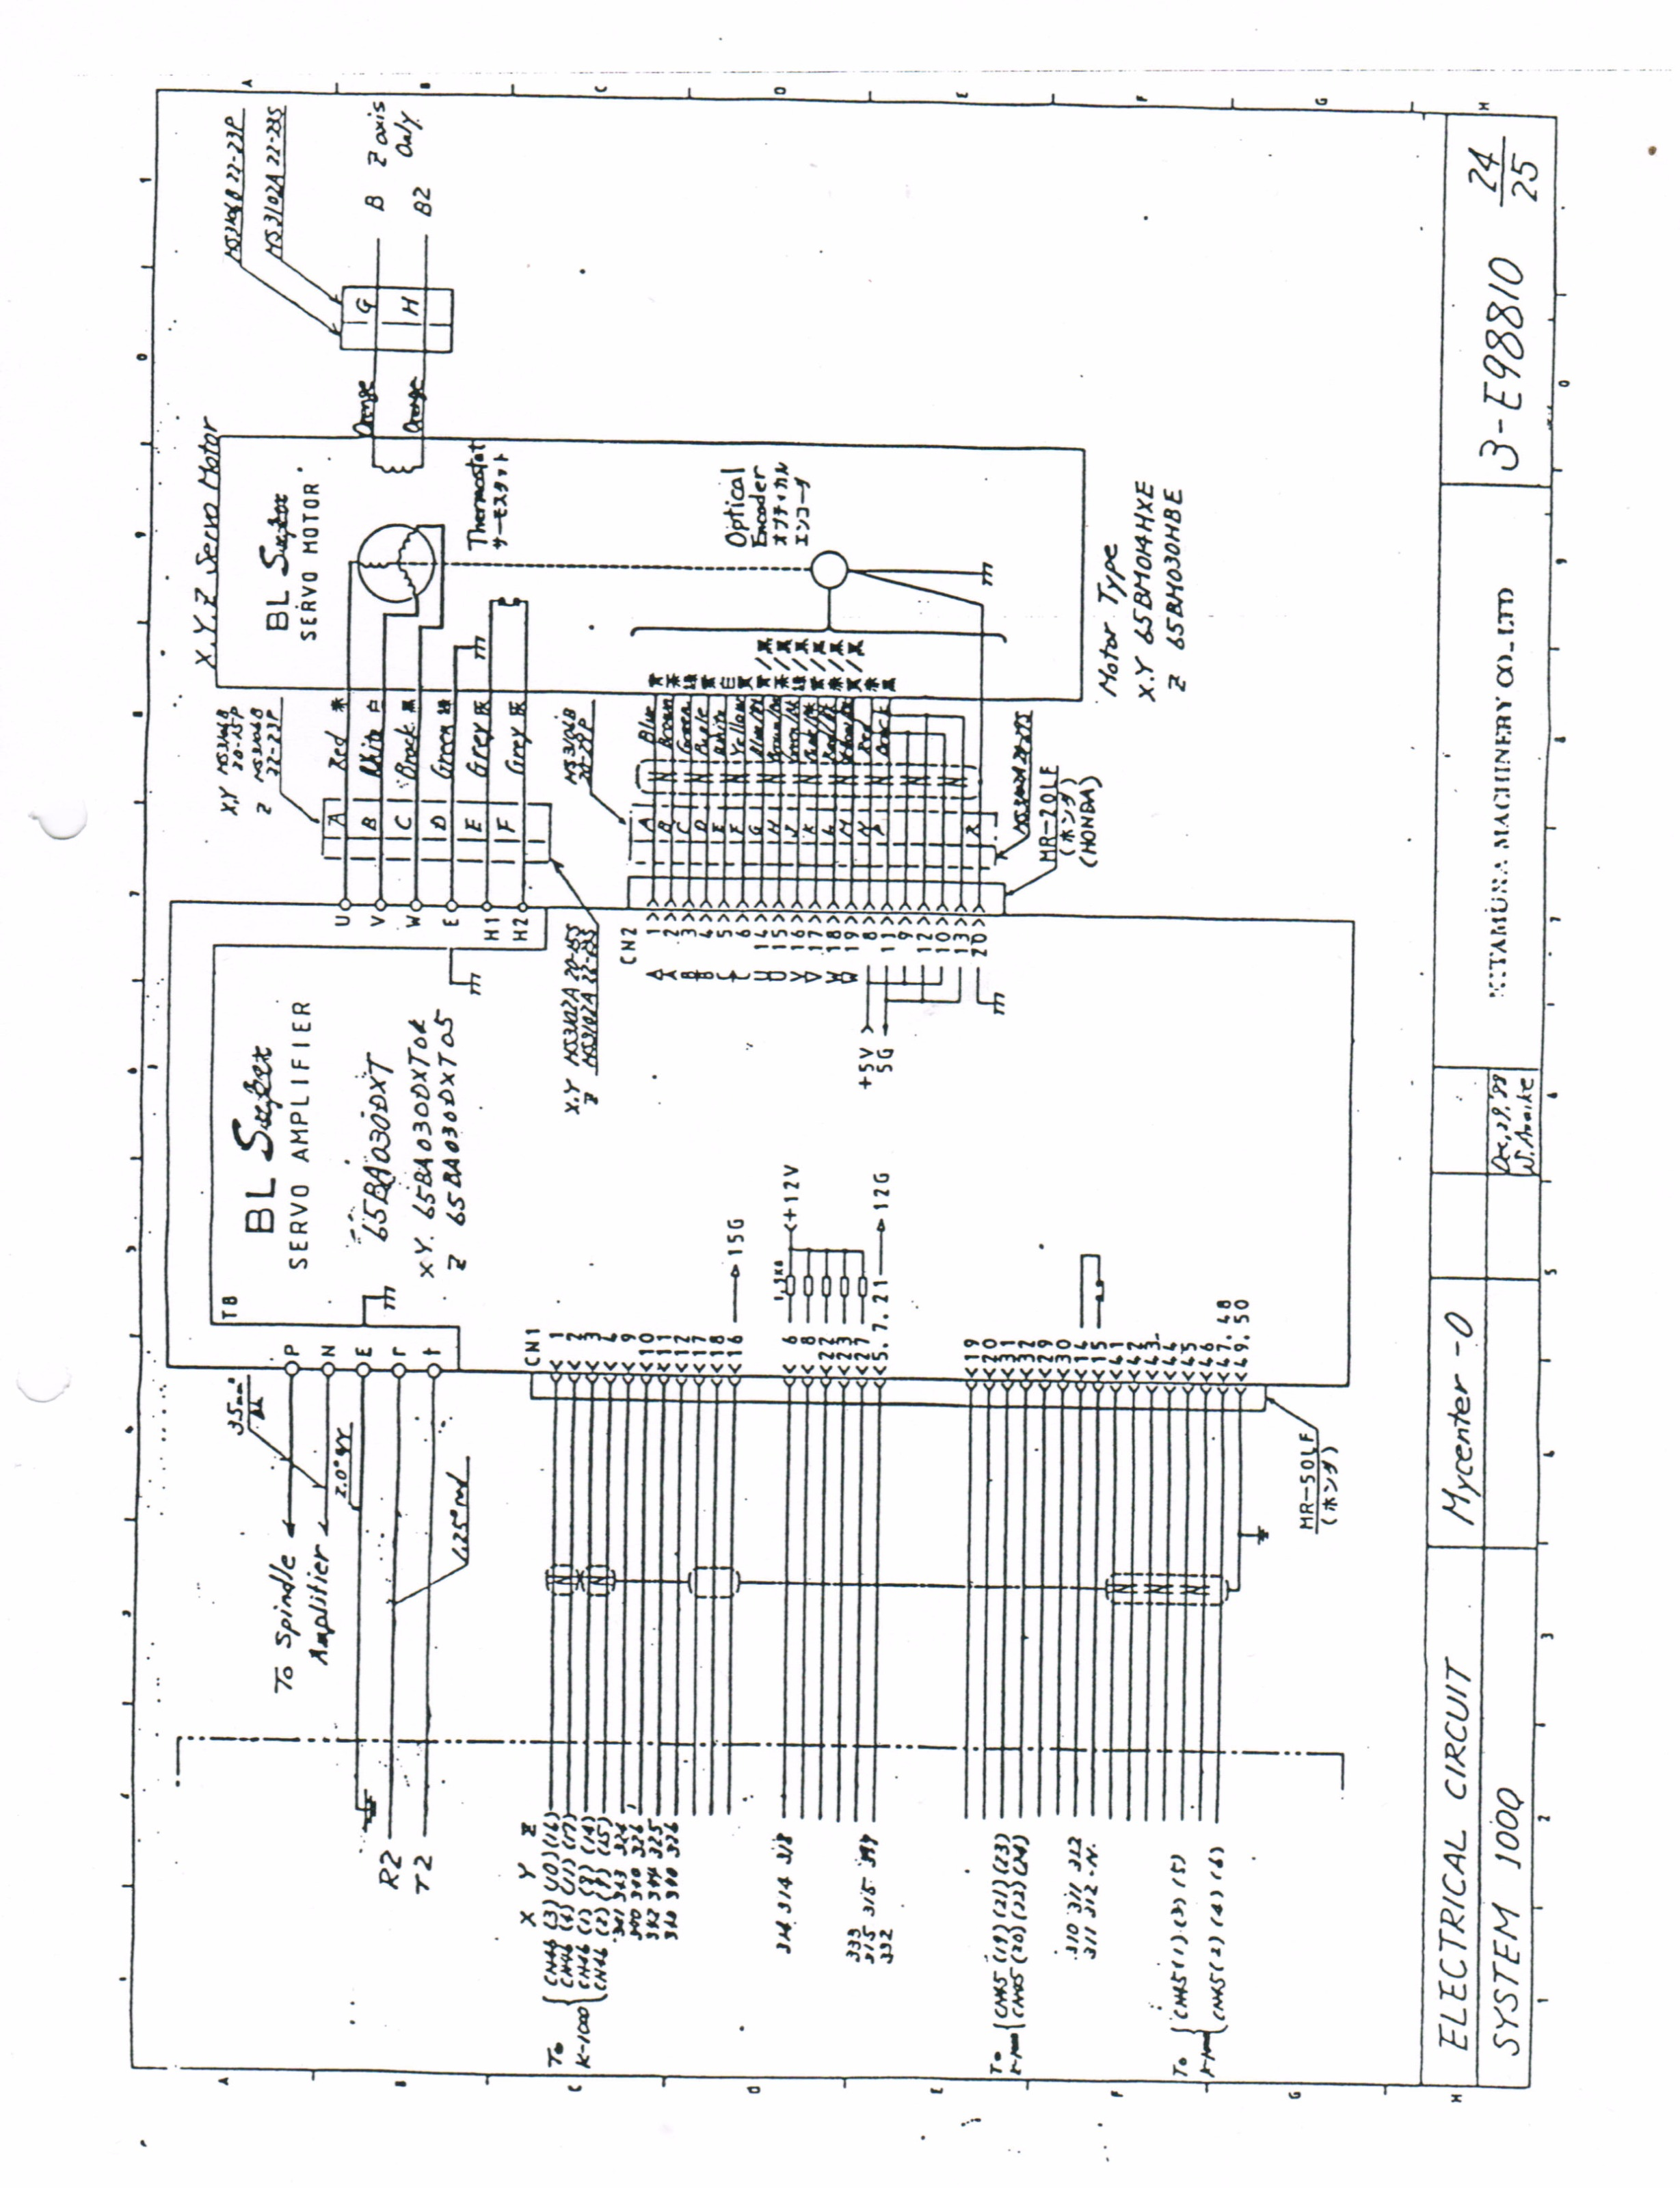 mesa 7i77 cnc wire diagram